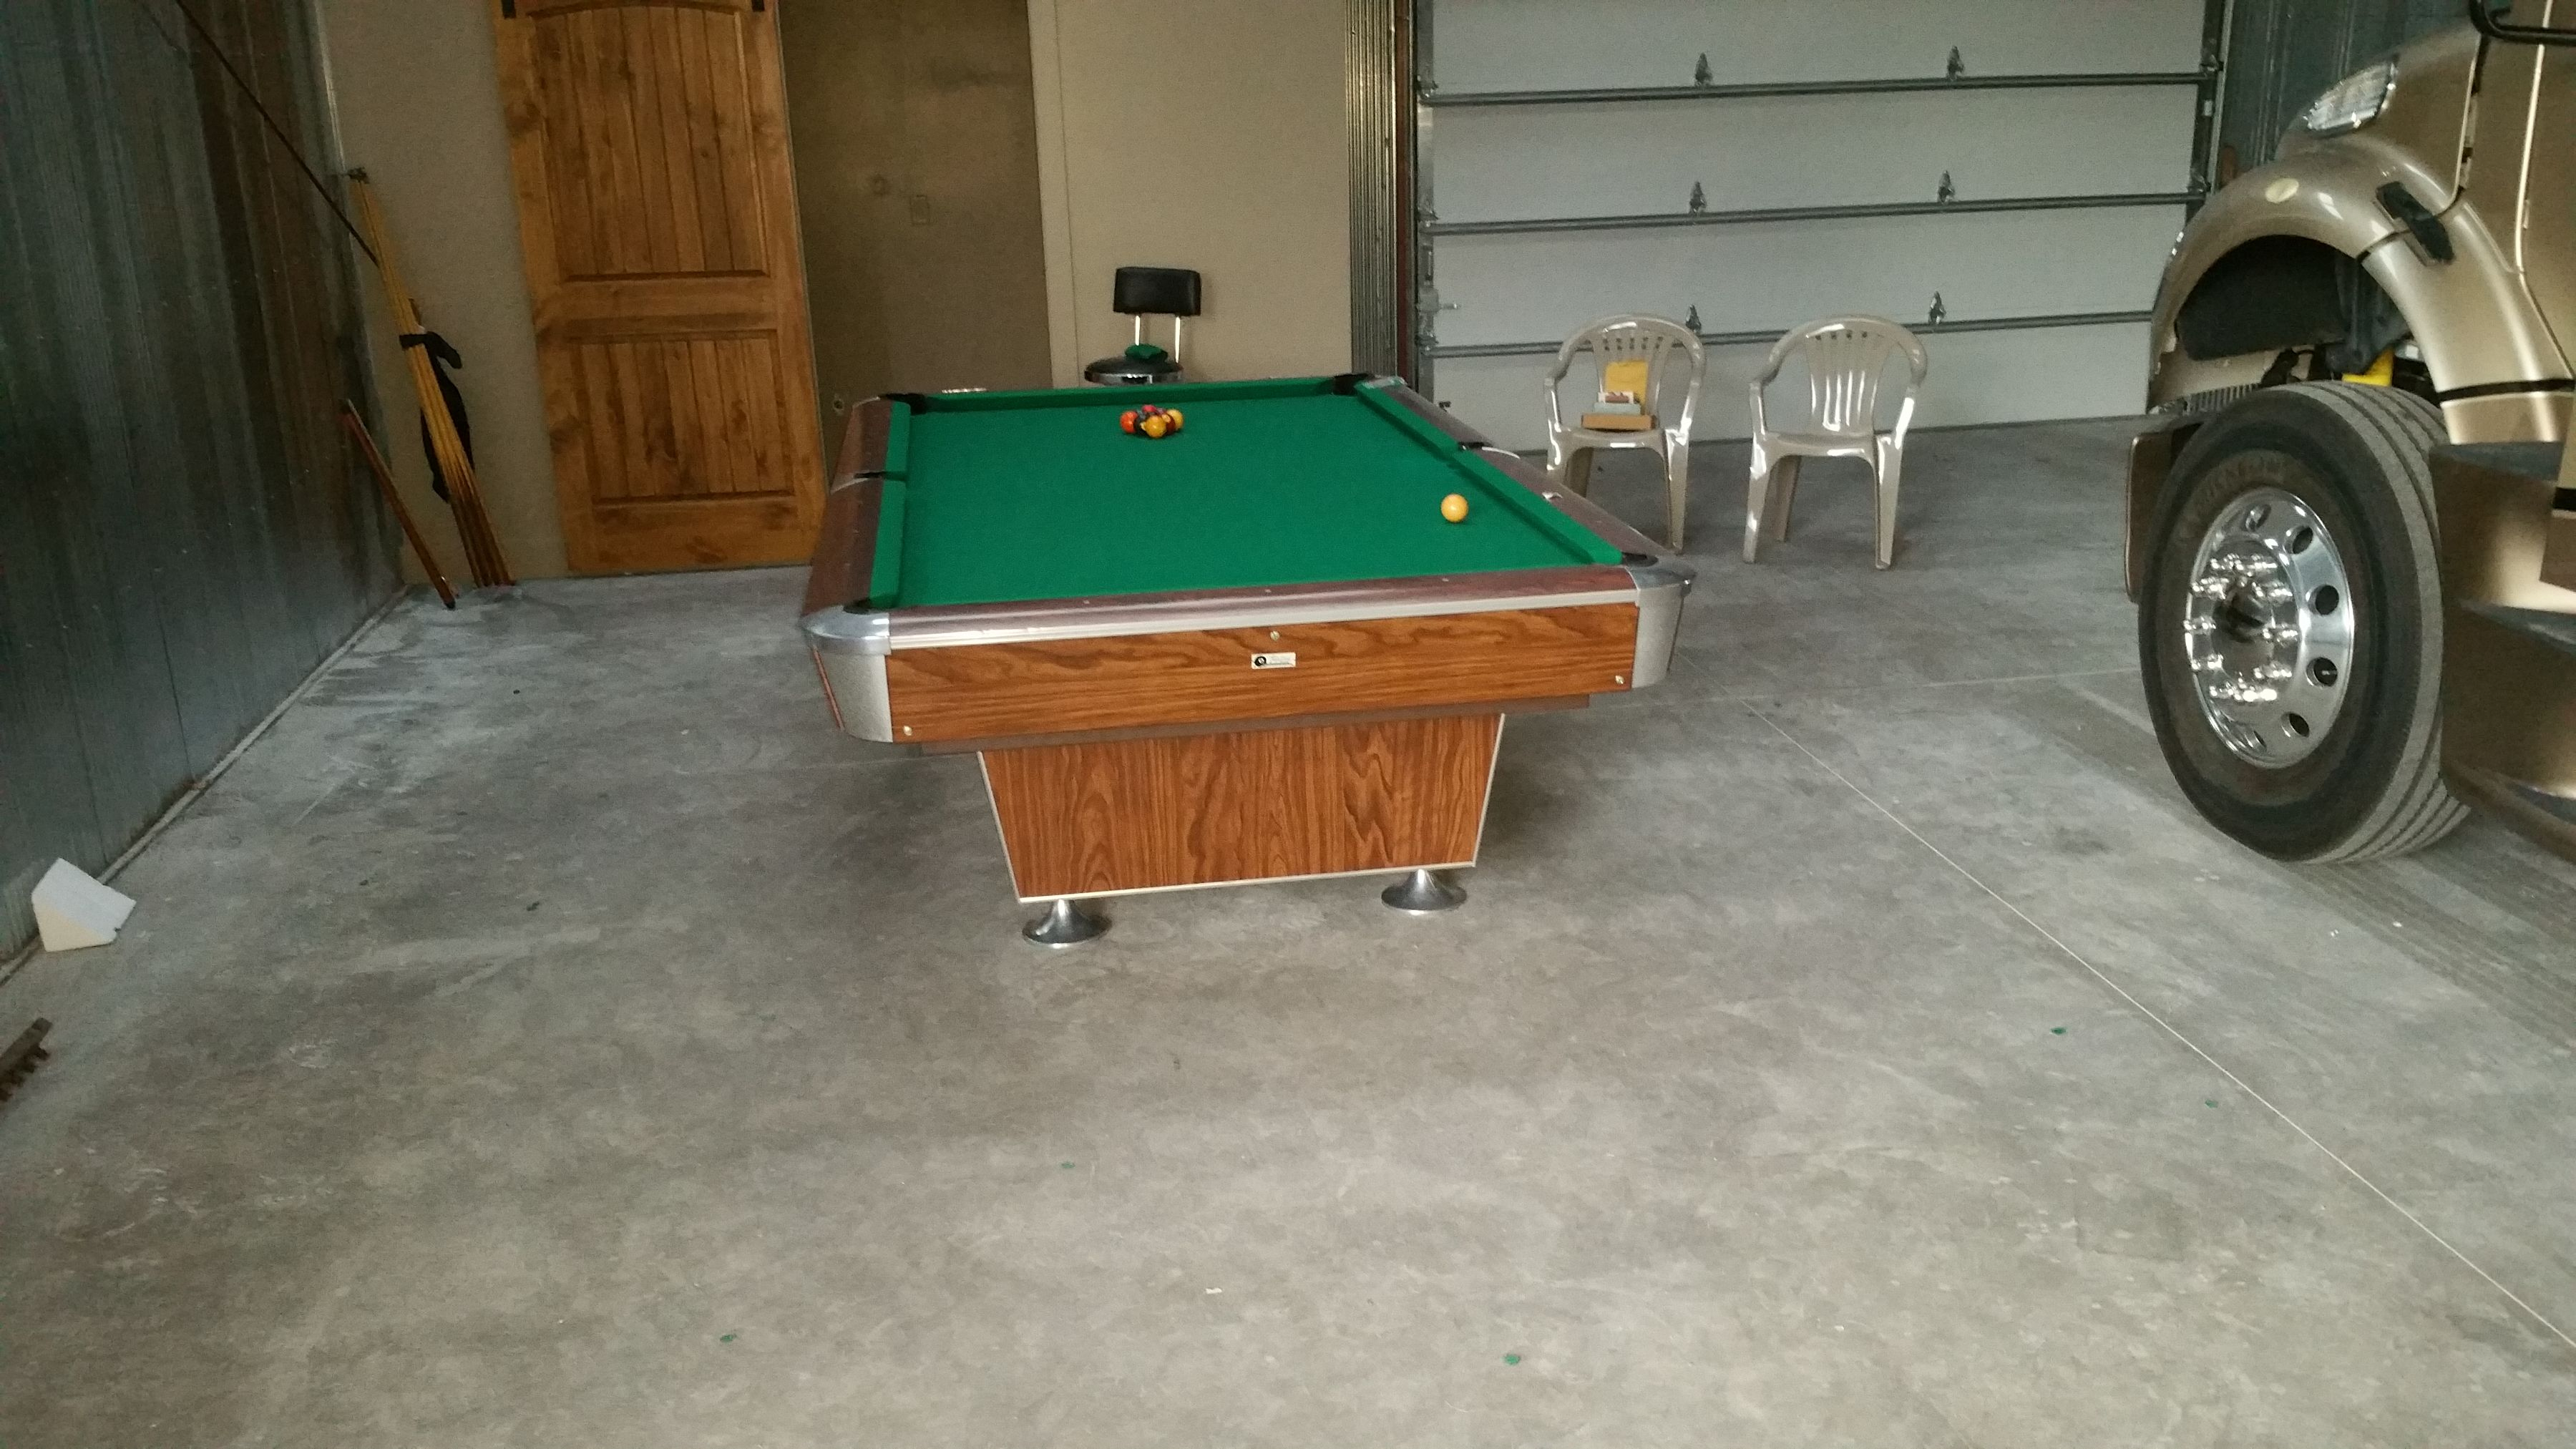 Blog Pool Table Repairs In Denver CO The Pool Table Experts - Pool table movers denver